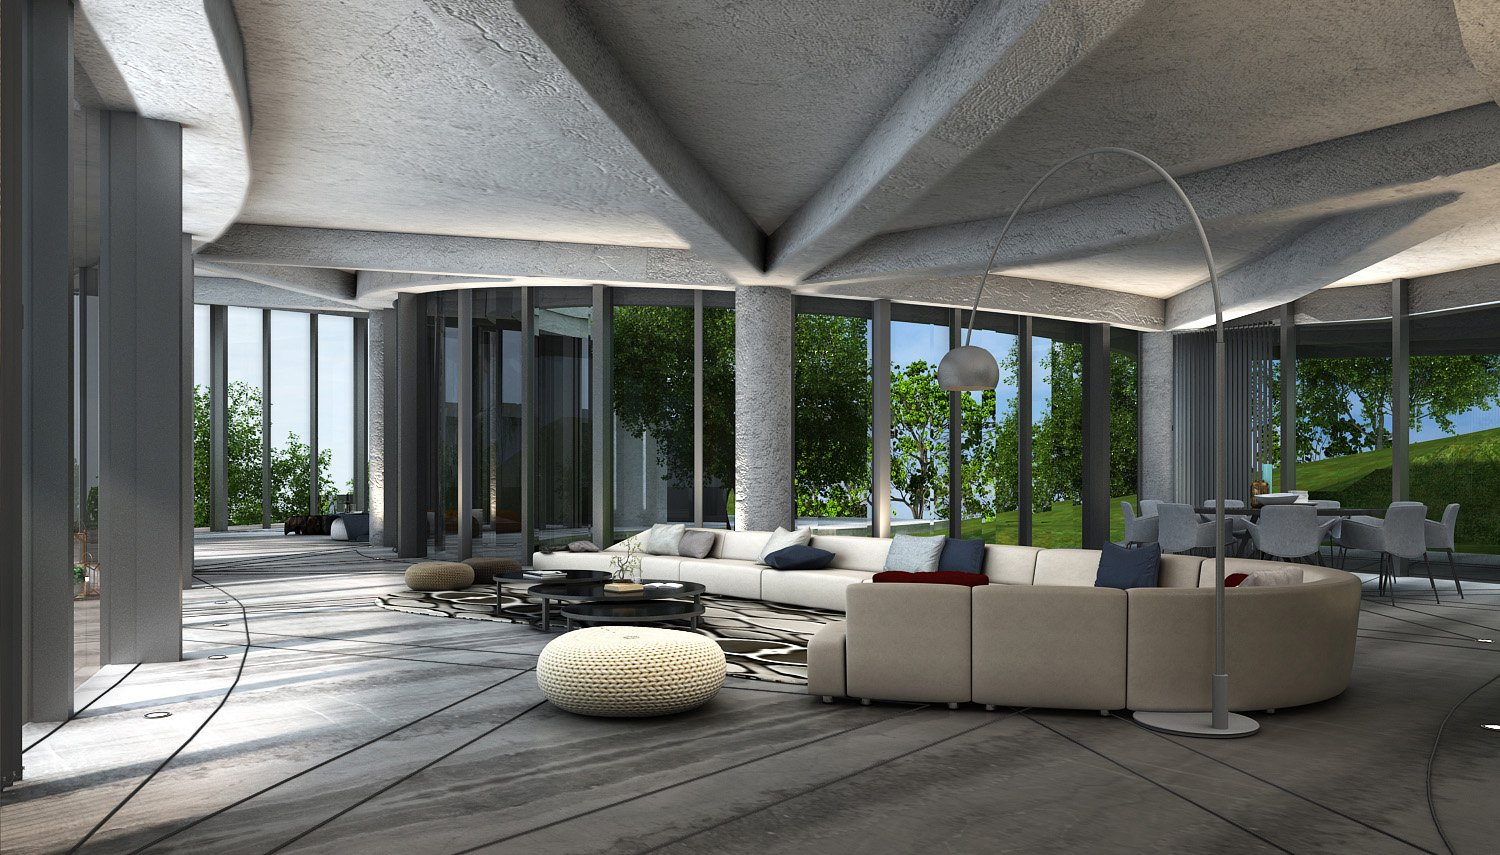 VIEW FROM THE ENTRANCE LOBBY KNS ARCHITECTS